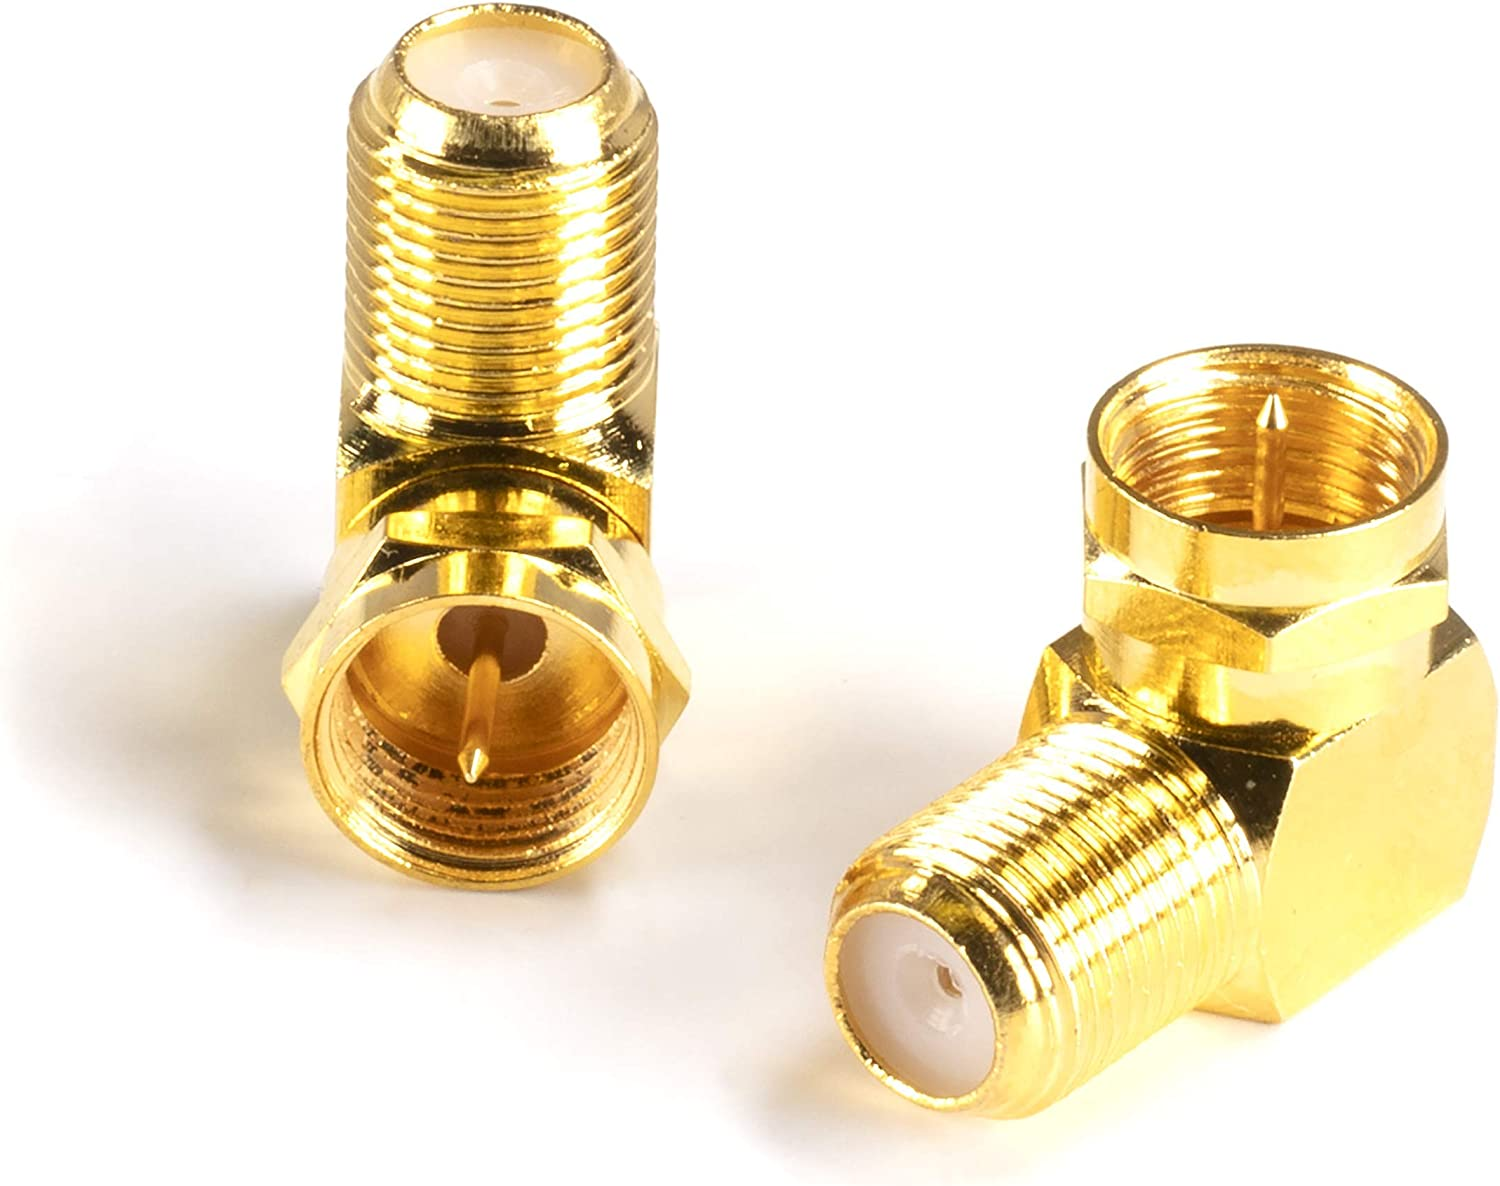 Gold Max 78% OFF Coaxial Cable Right Angle Connector - Tight Brand Cheap Sale Venue 10 Pack for C